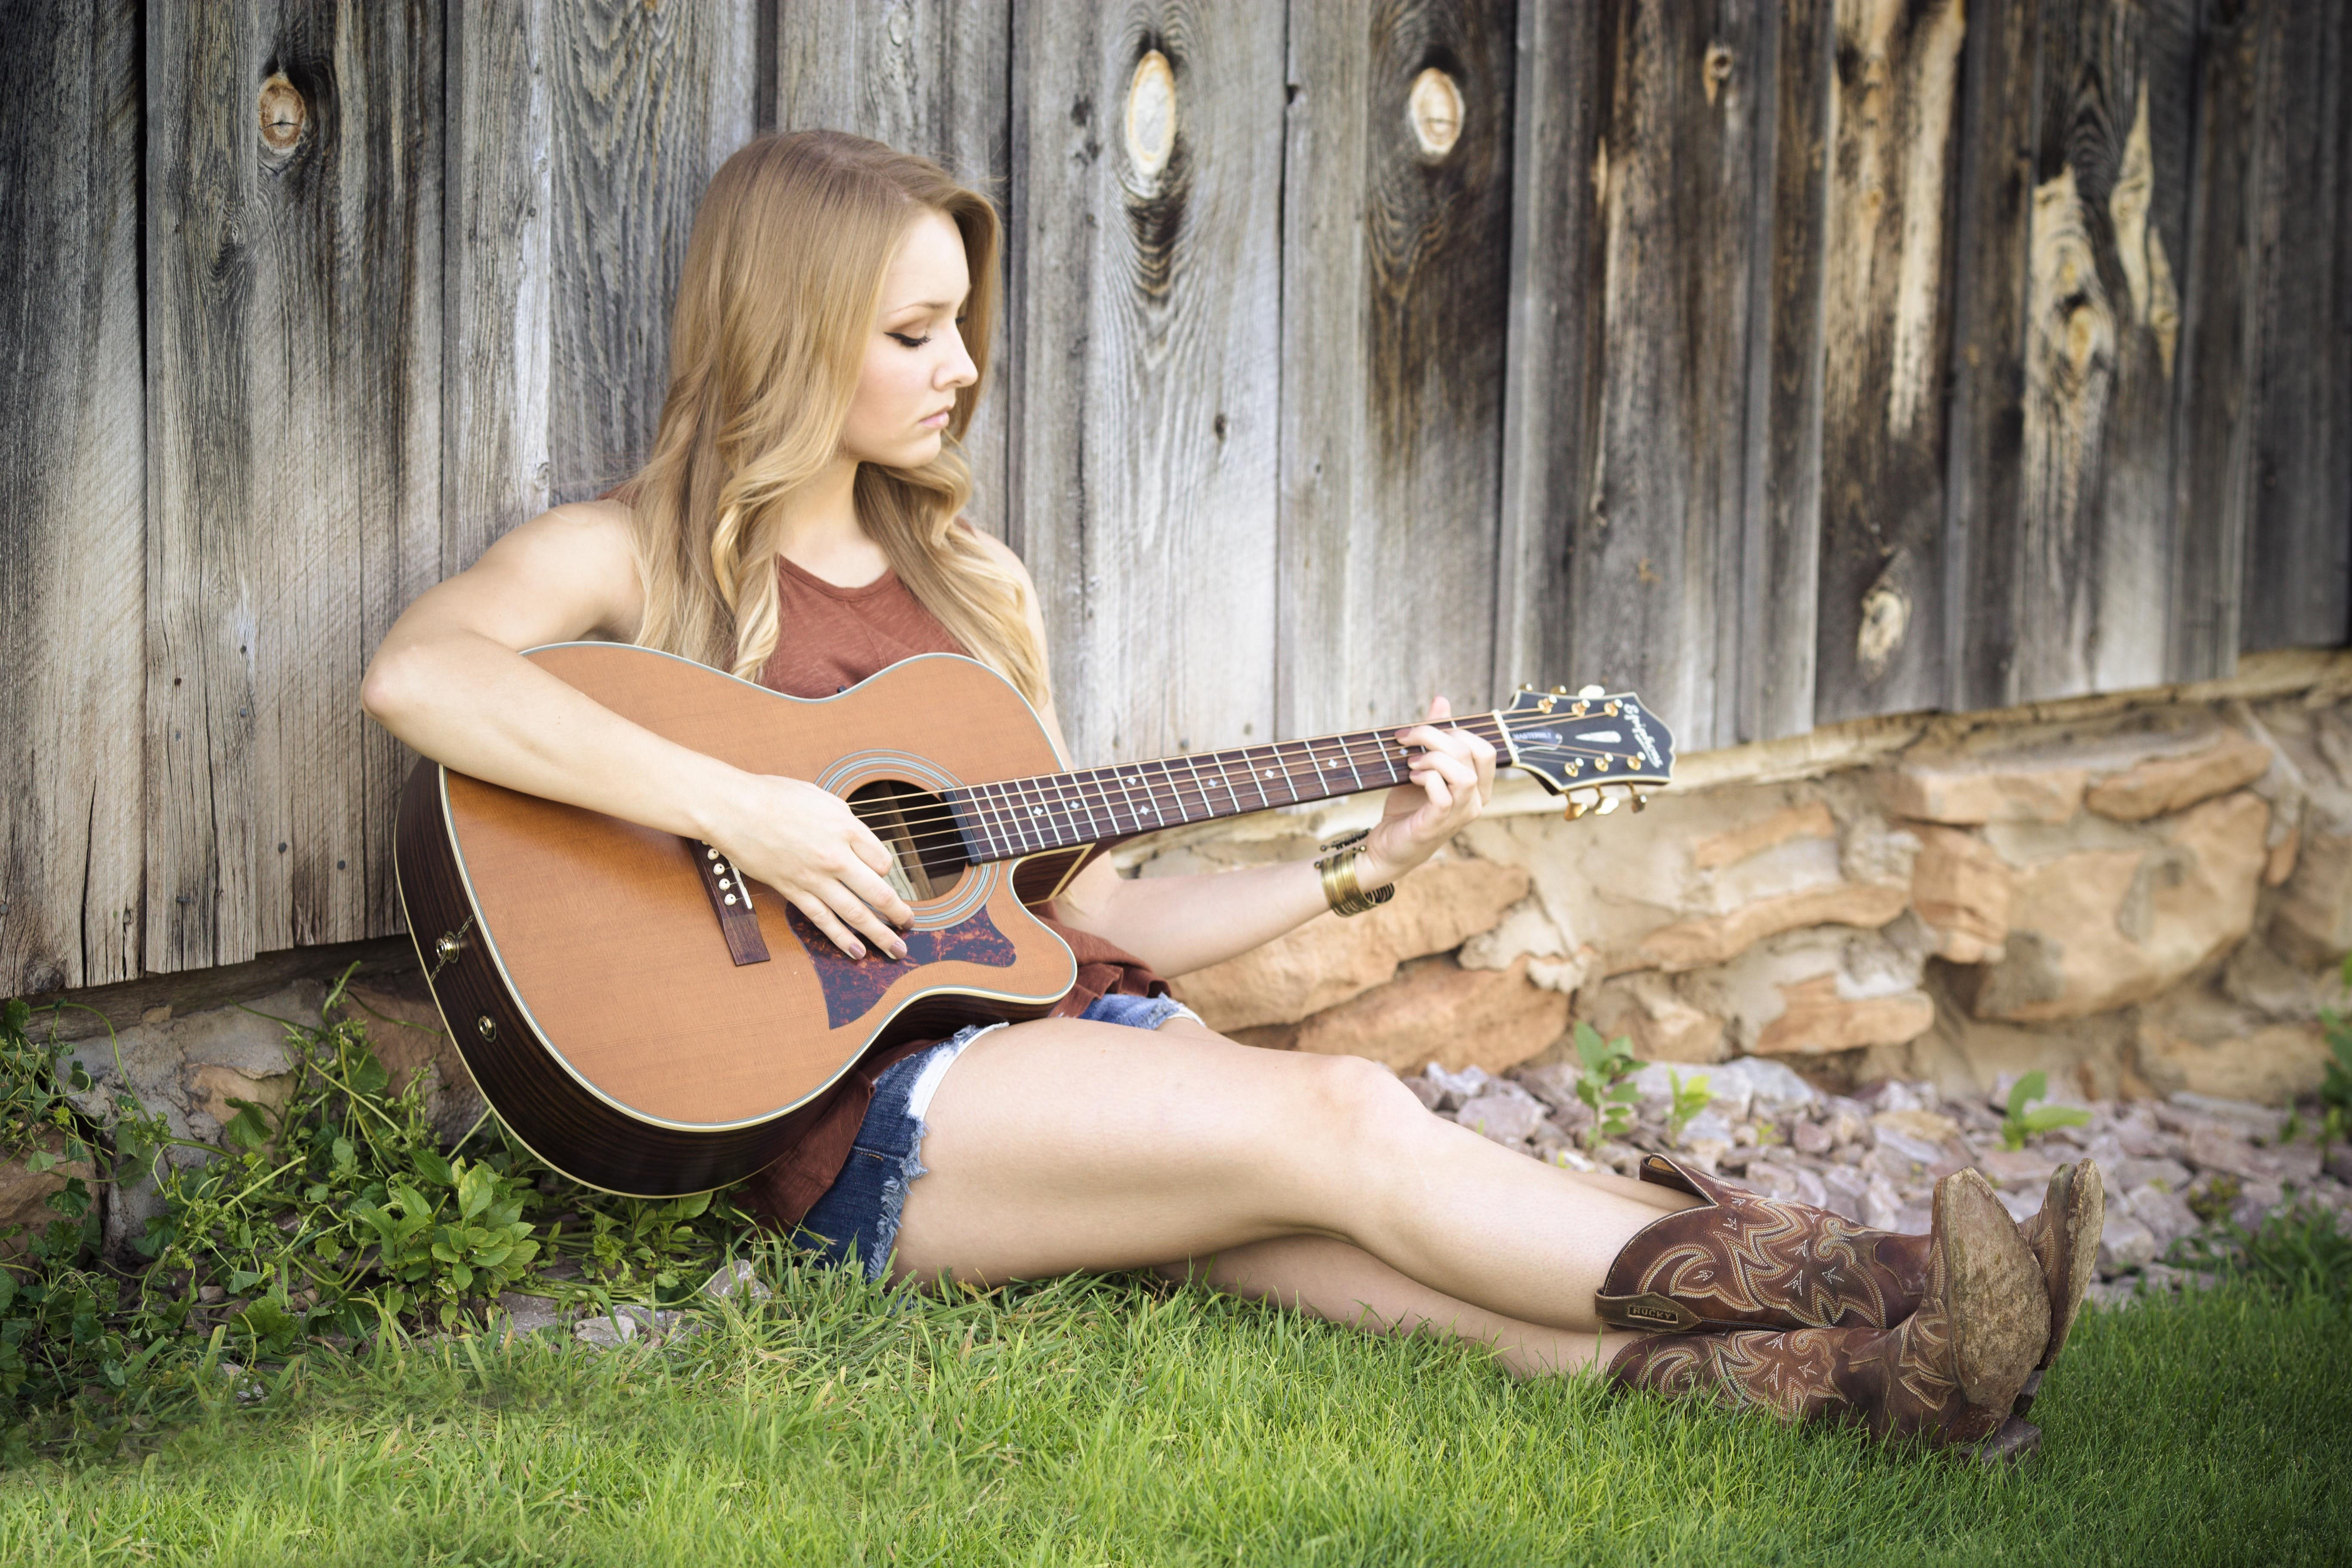 Woman in Brown Tank Top With Acoustic Guitar Sitting on Green Grass Beside Brown Wooden Fence, Acoustic guitar, Sit, Person, Photoshoot, HQ Photo